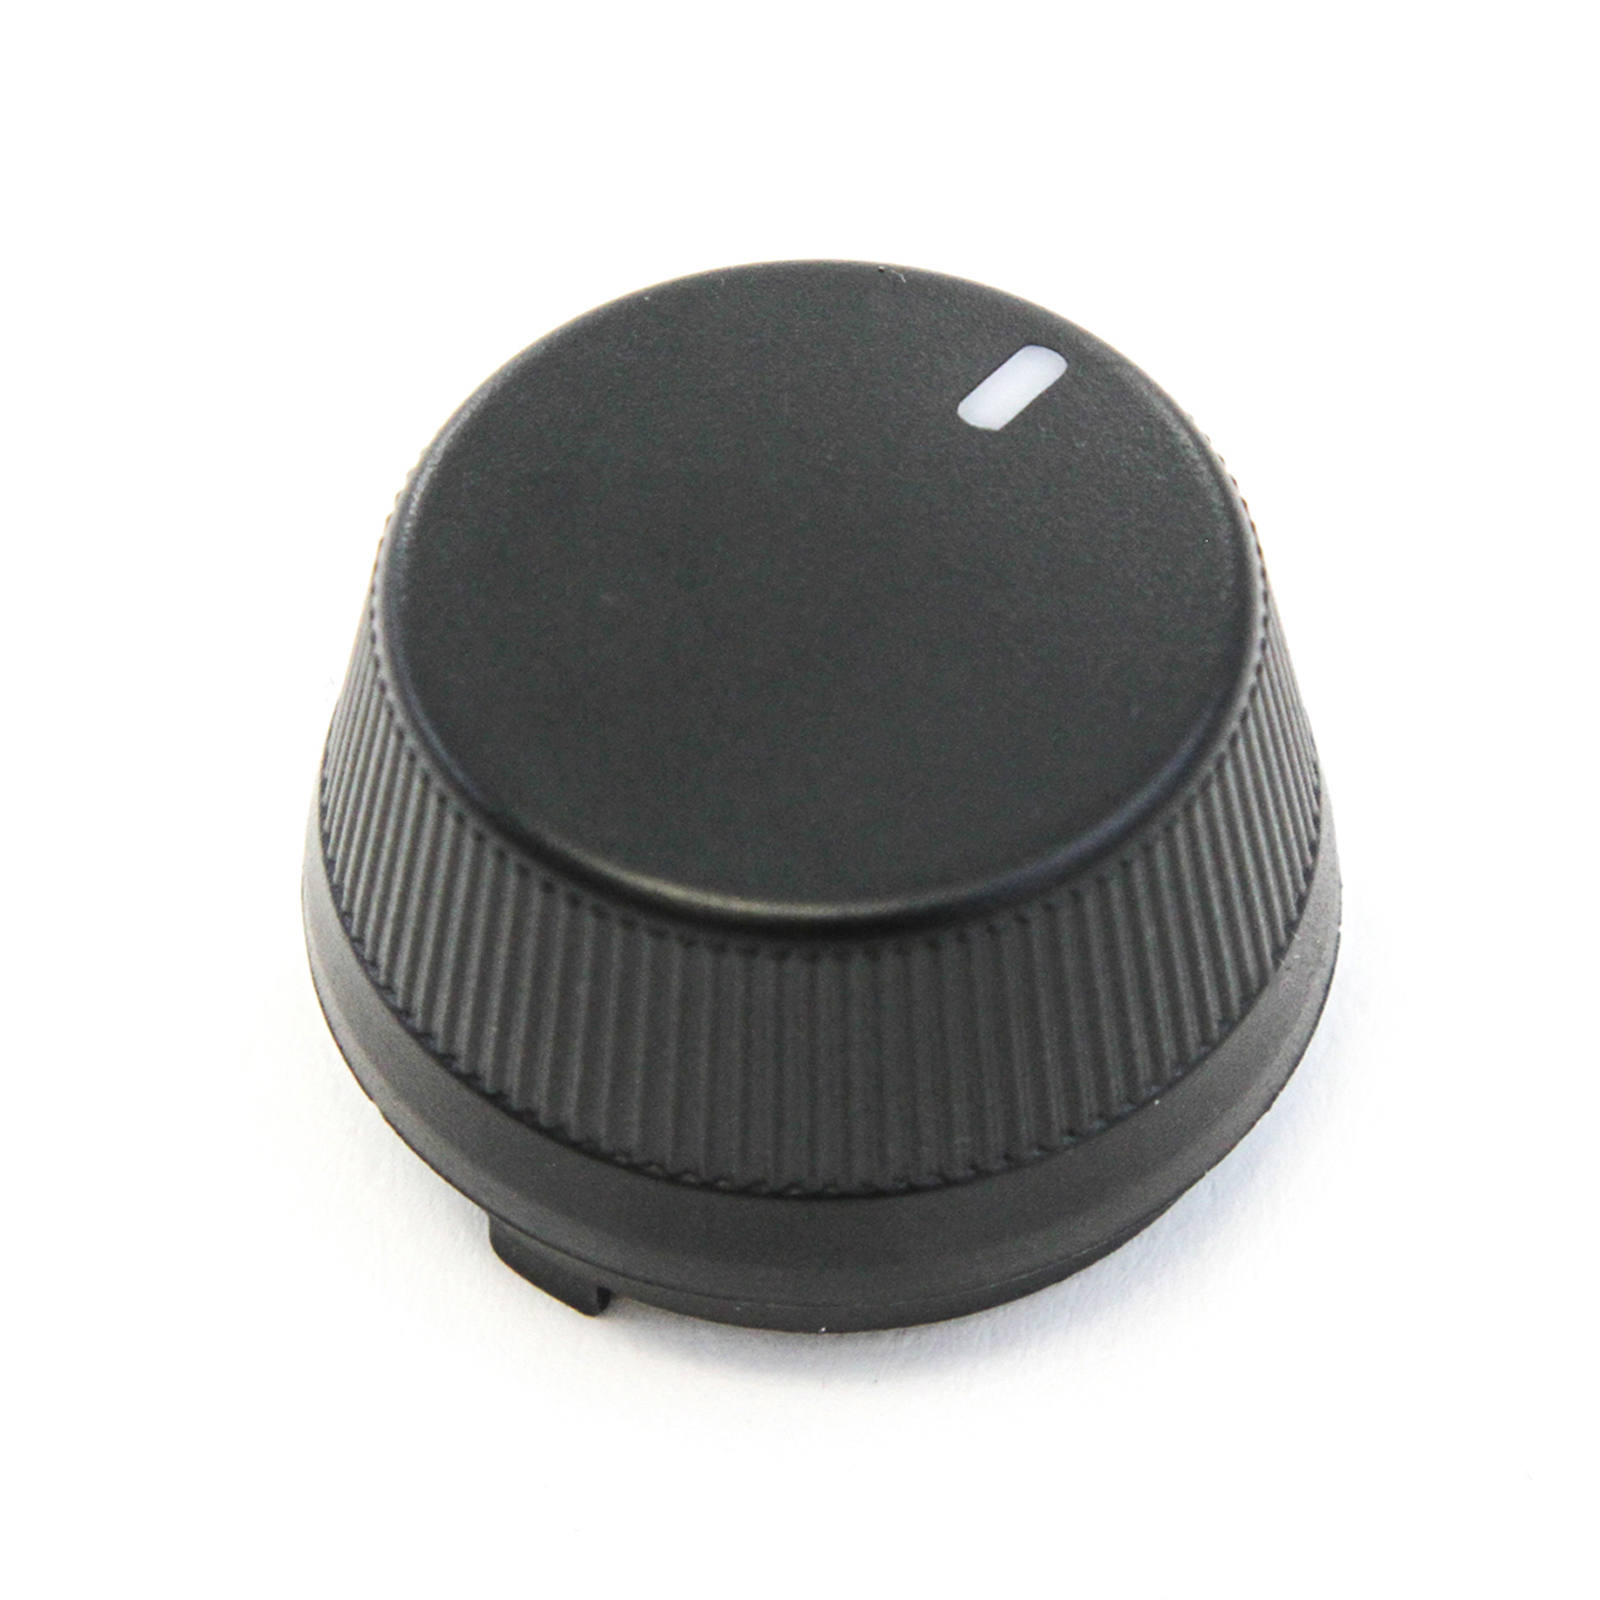 2 Control Knob Fan Speed Heater A//C 1998-2000 Compatible with Honda Accord Temperature Black